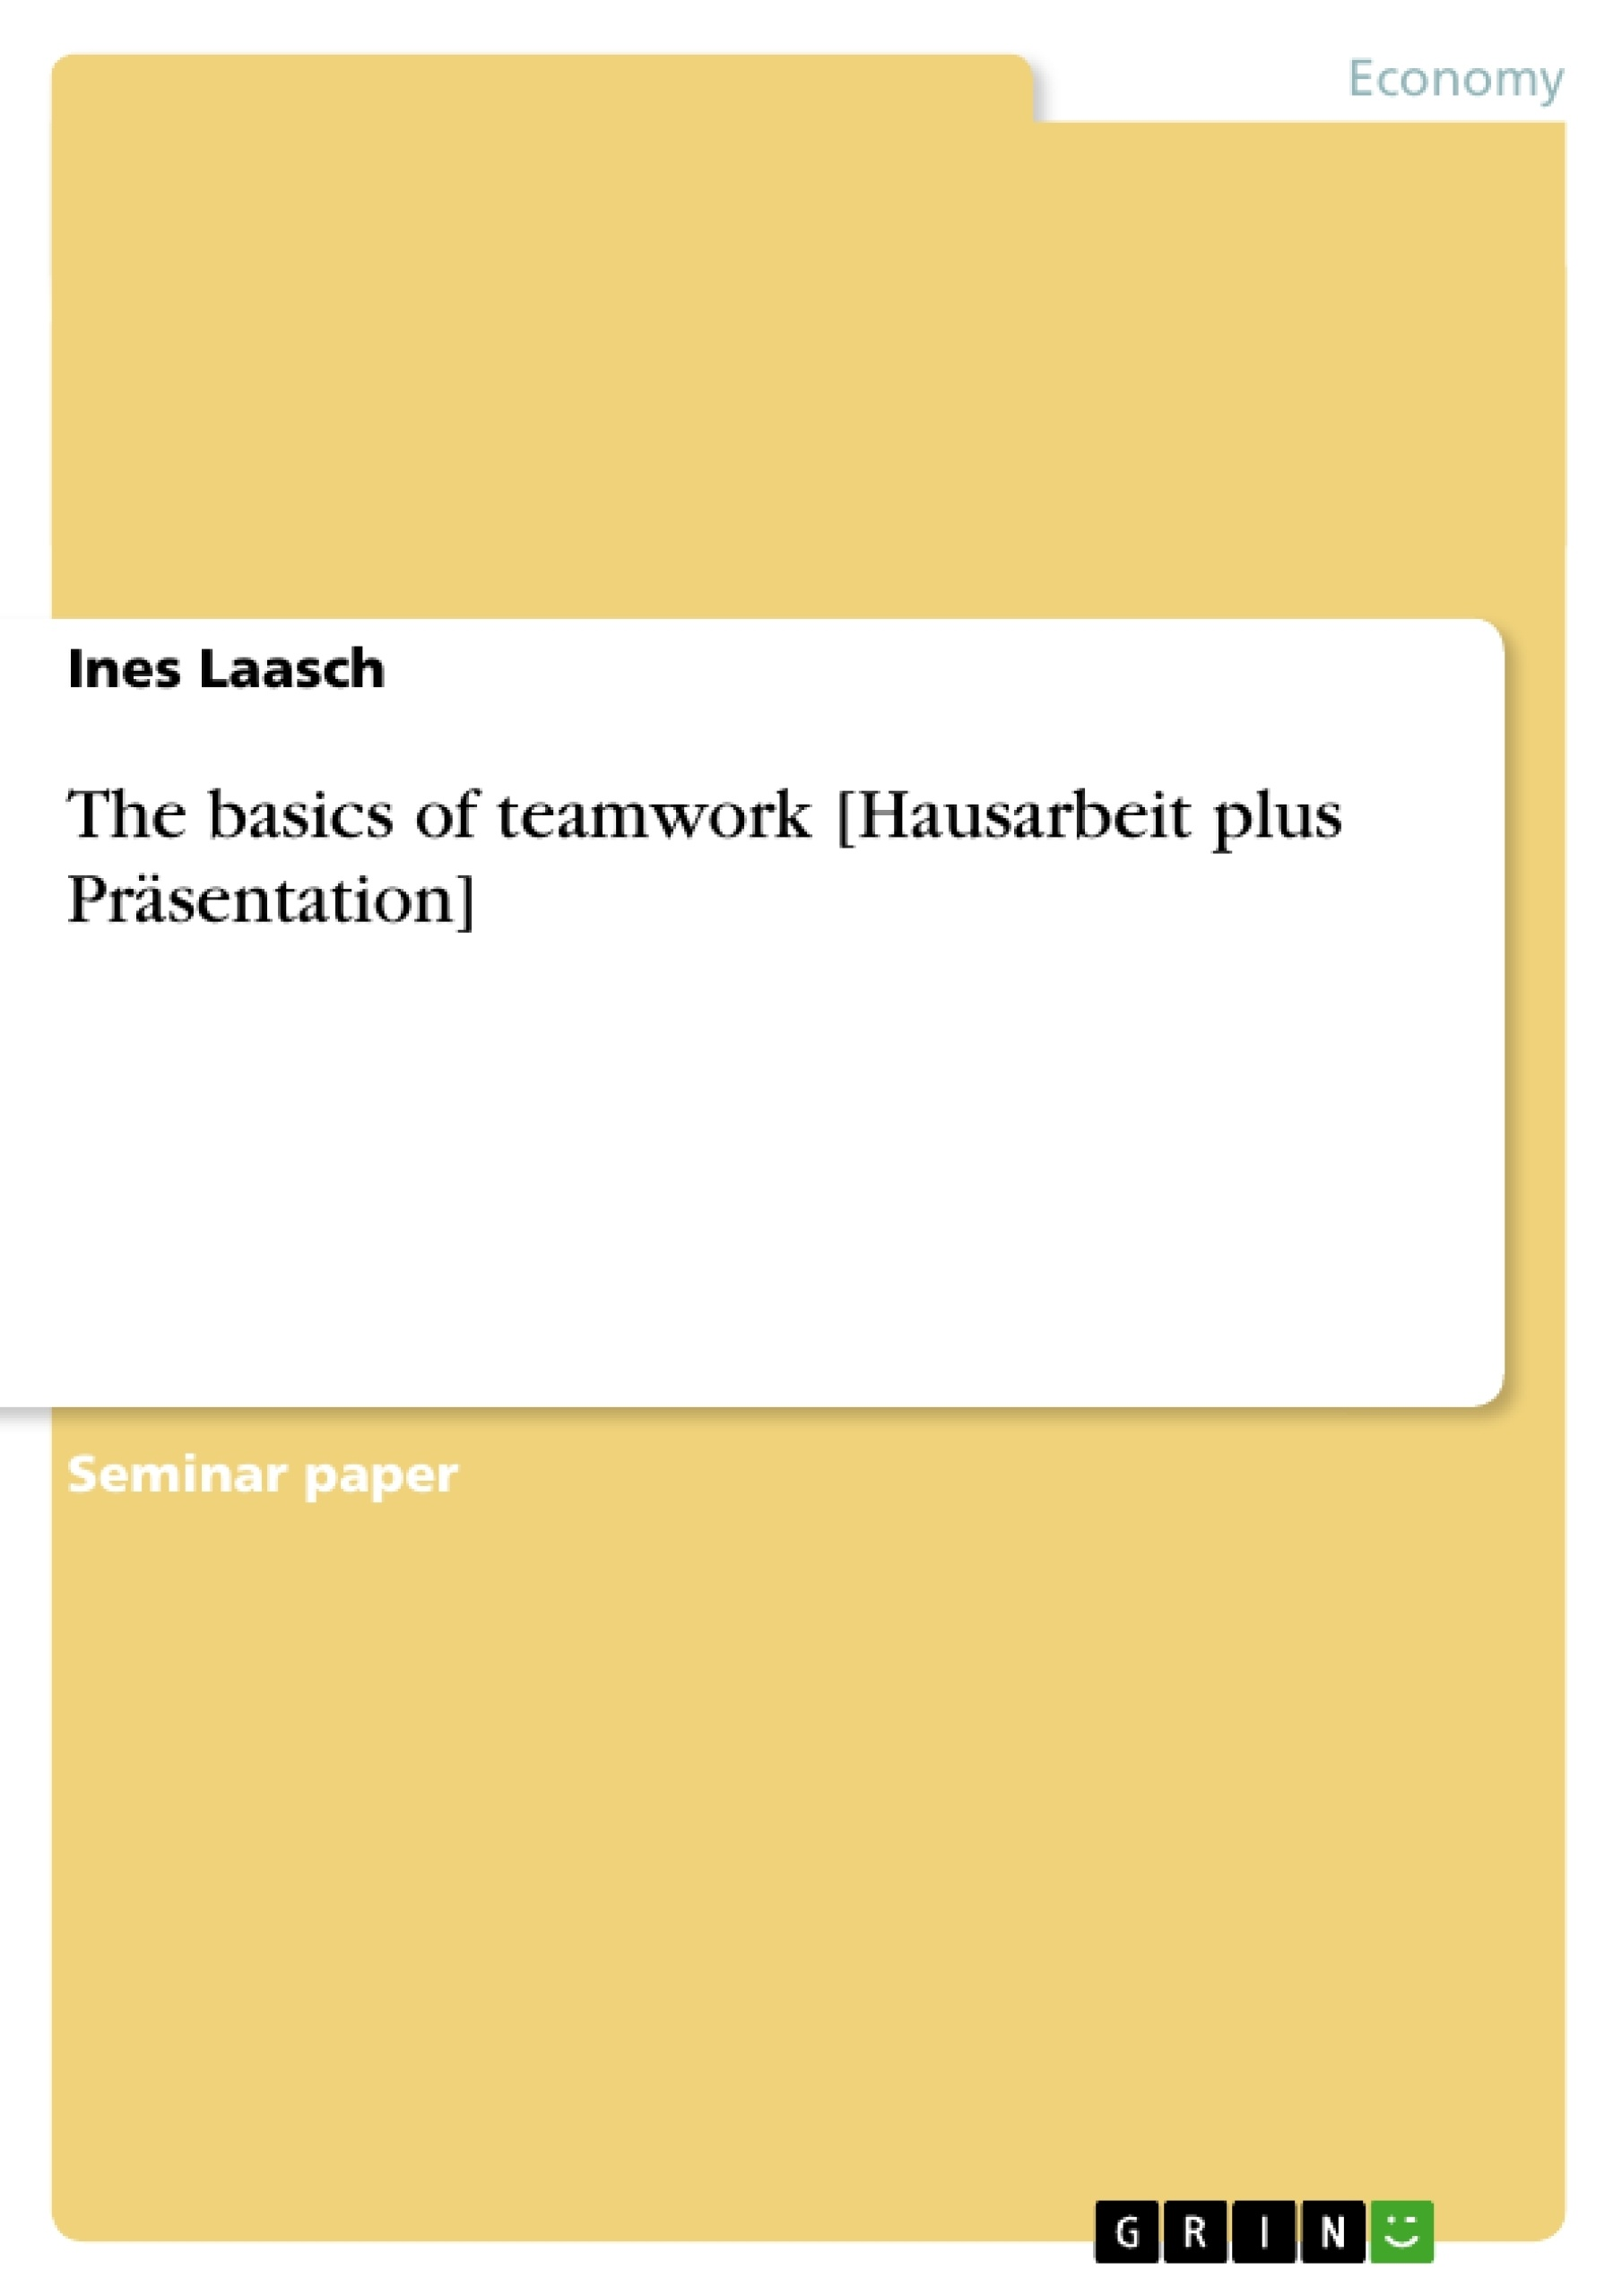 Title: The basics of teamwork [Hausarbeit plus Präsentation]